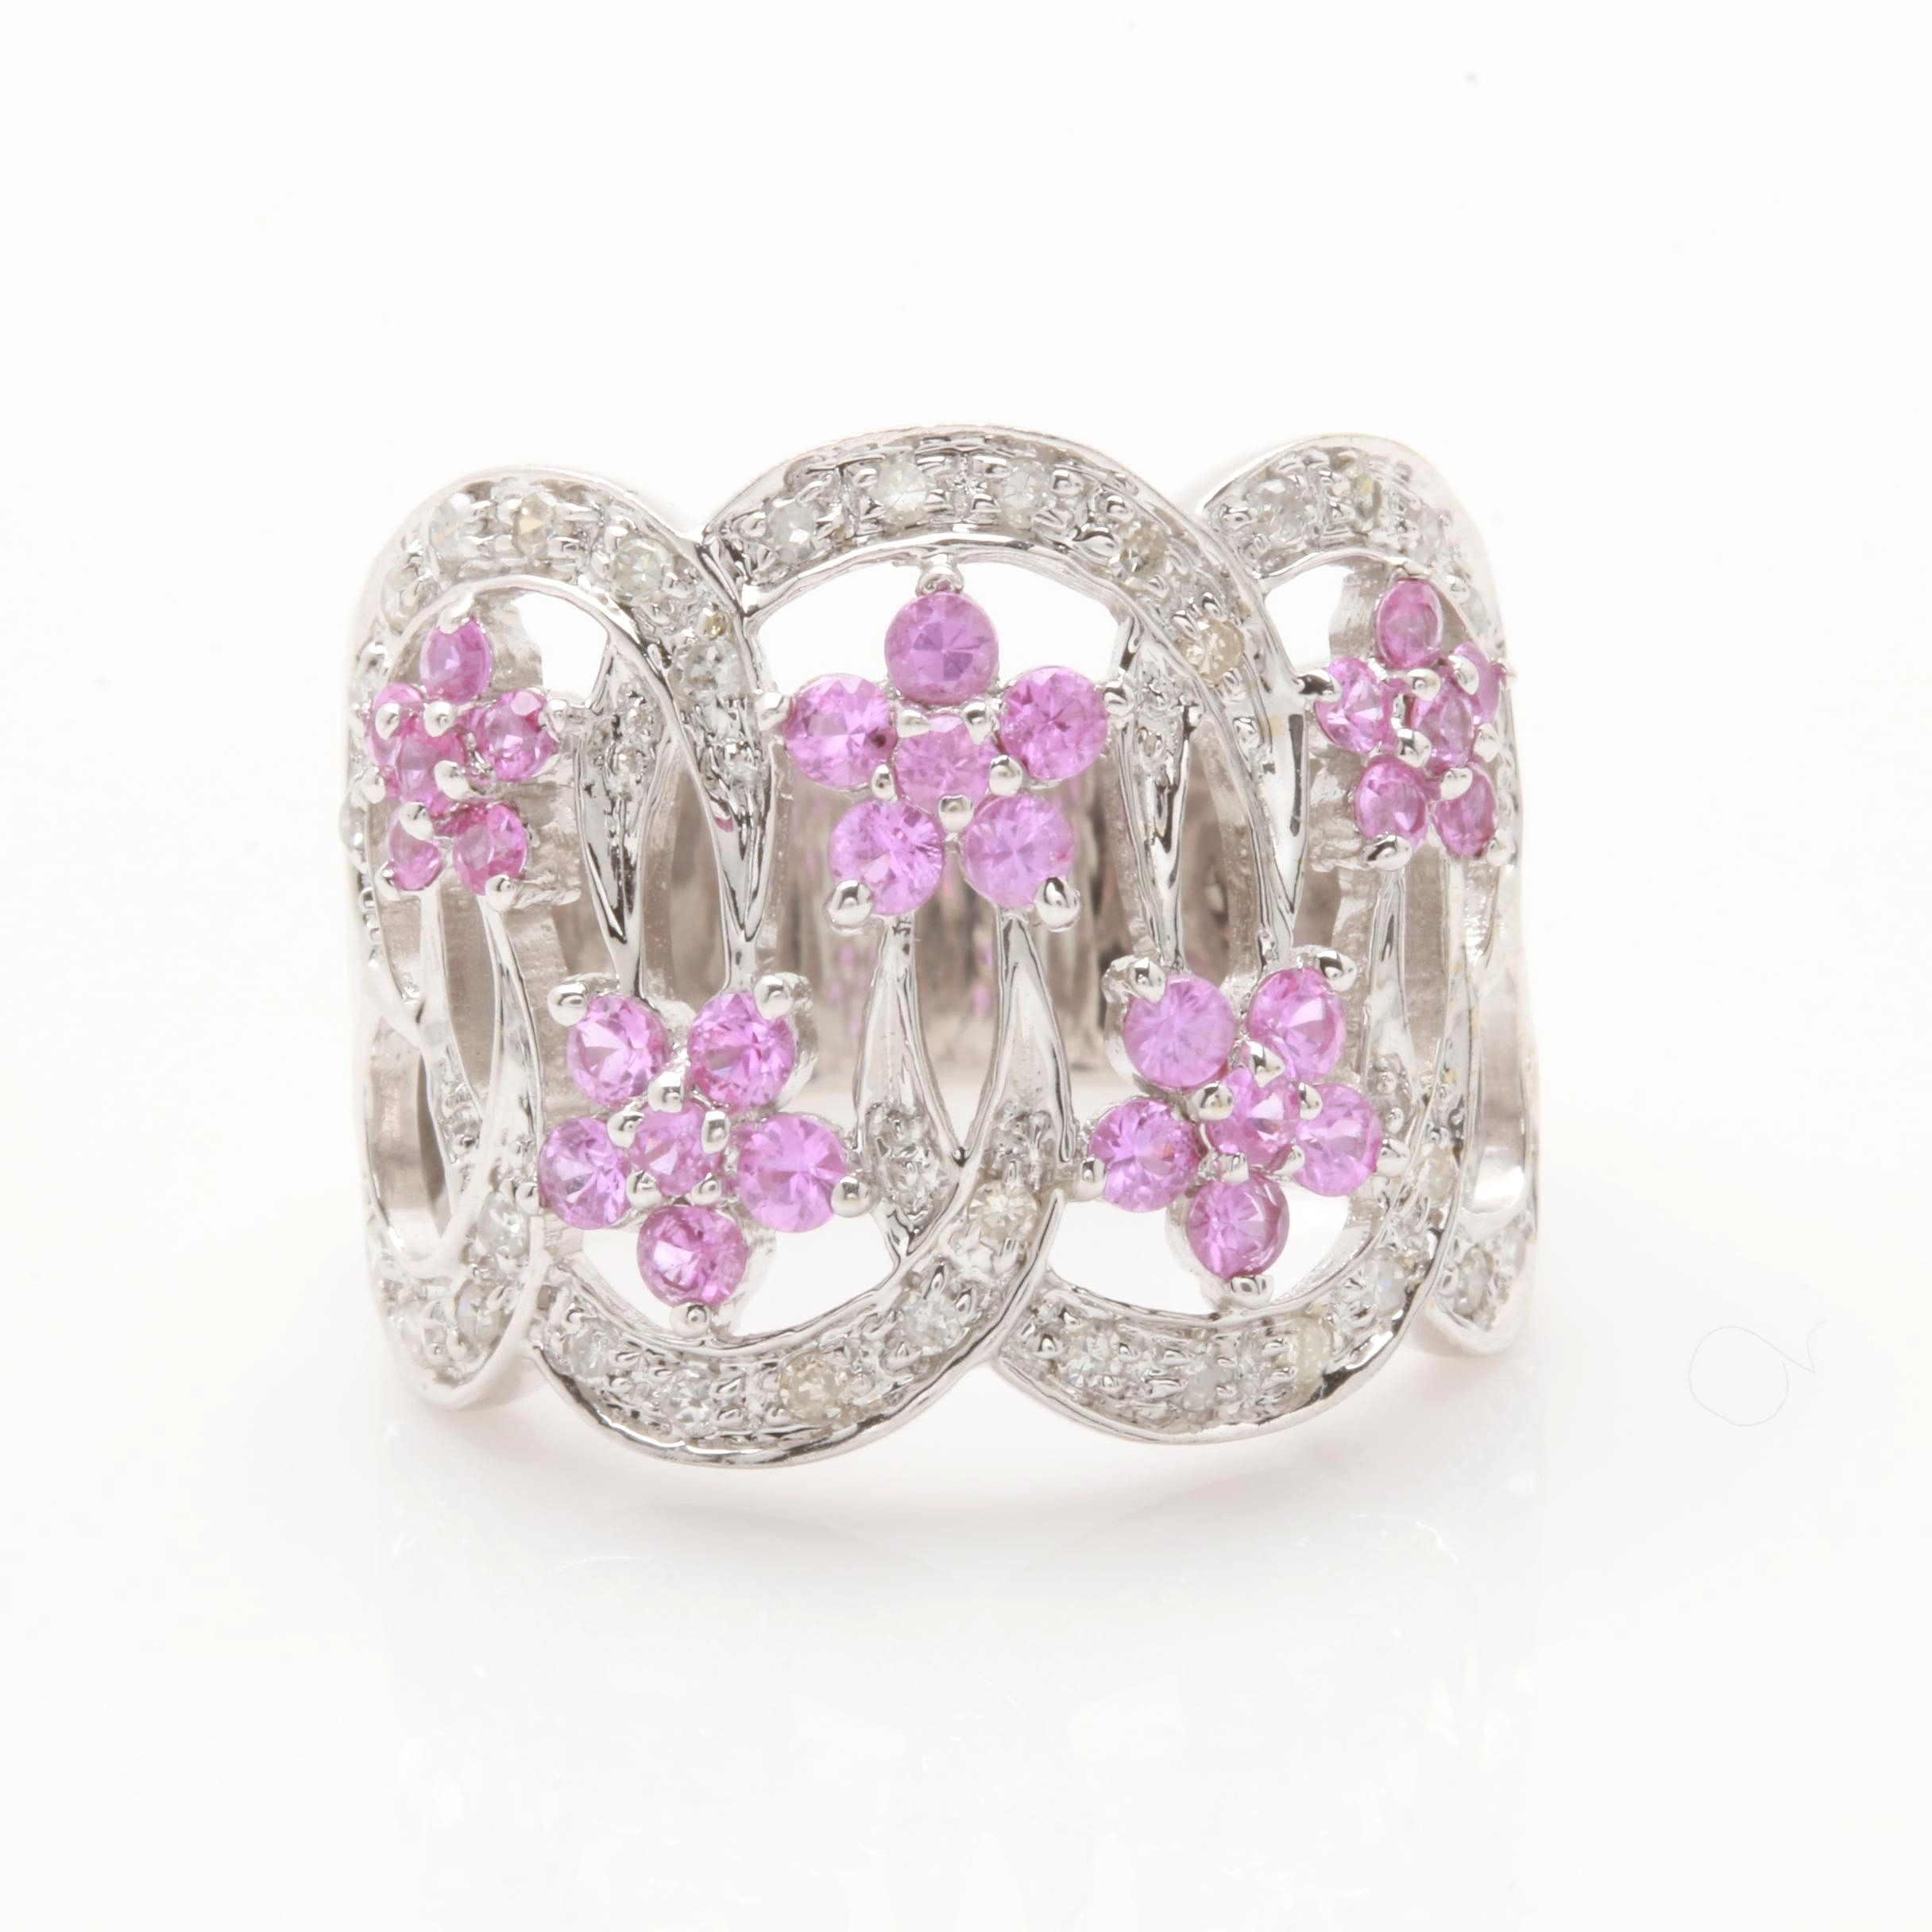 14K White Gold Pink Sapphire and Diamond Flower Ring